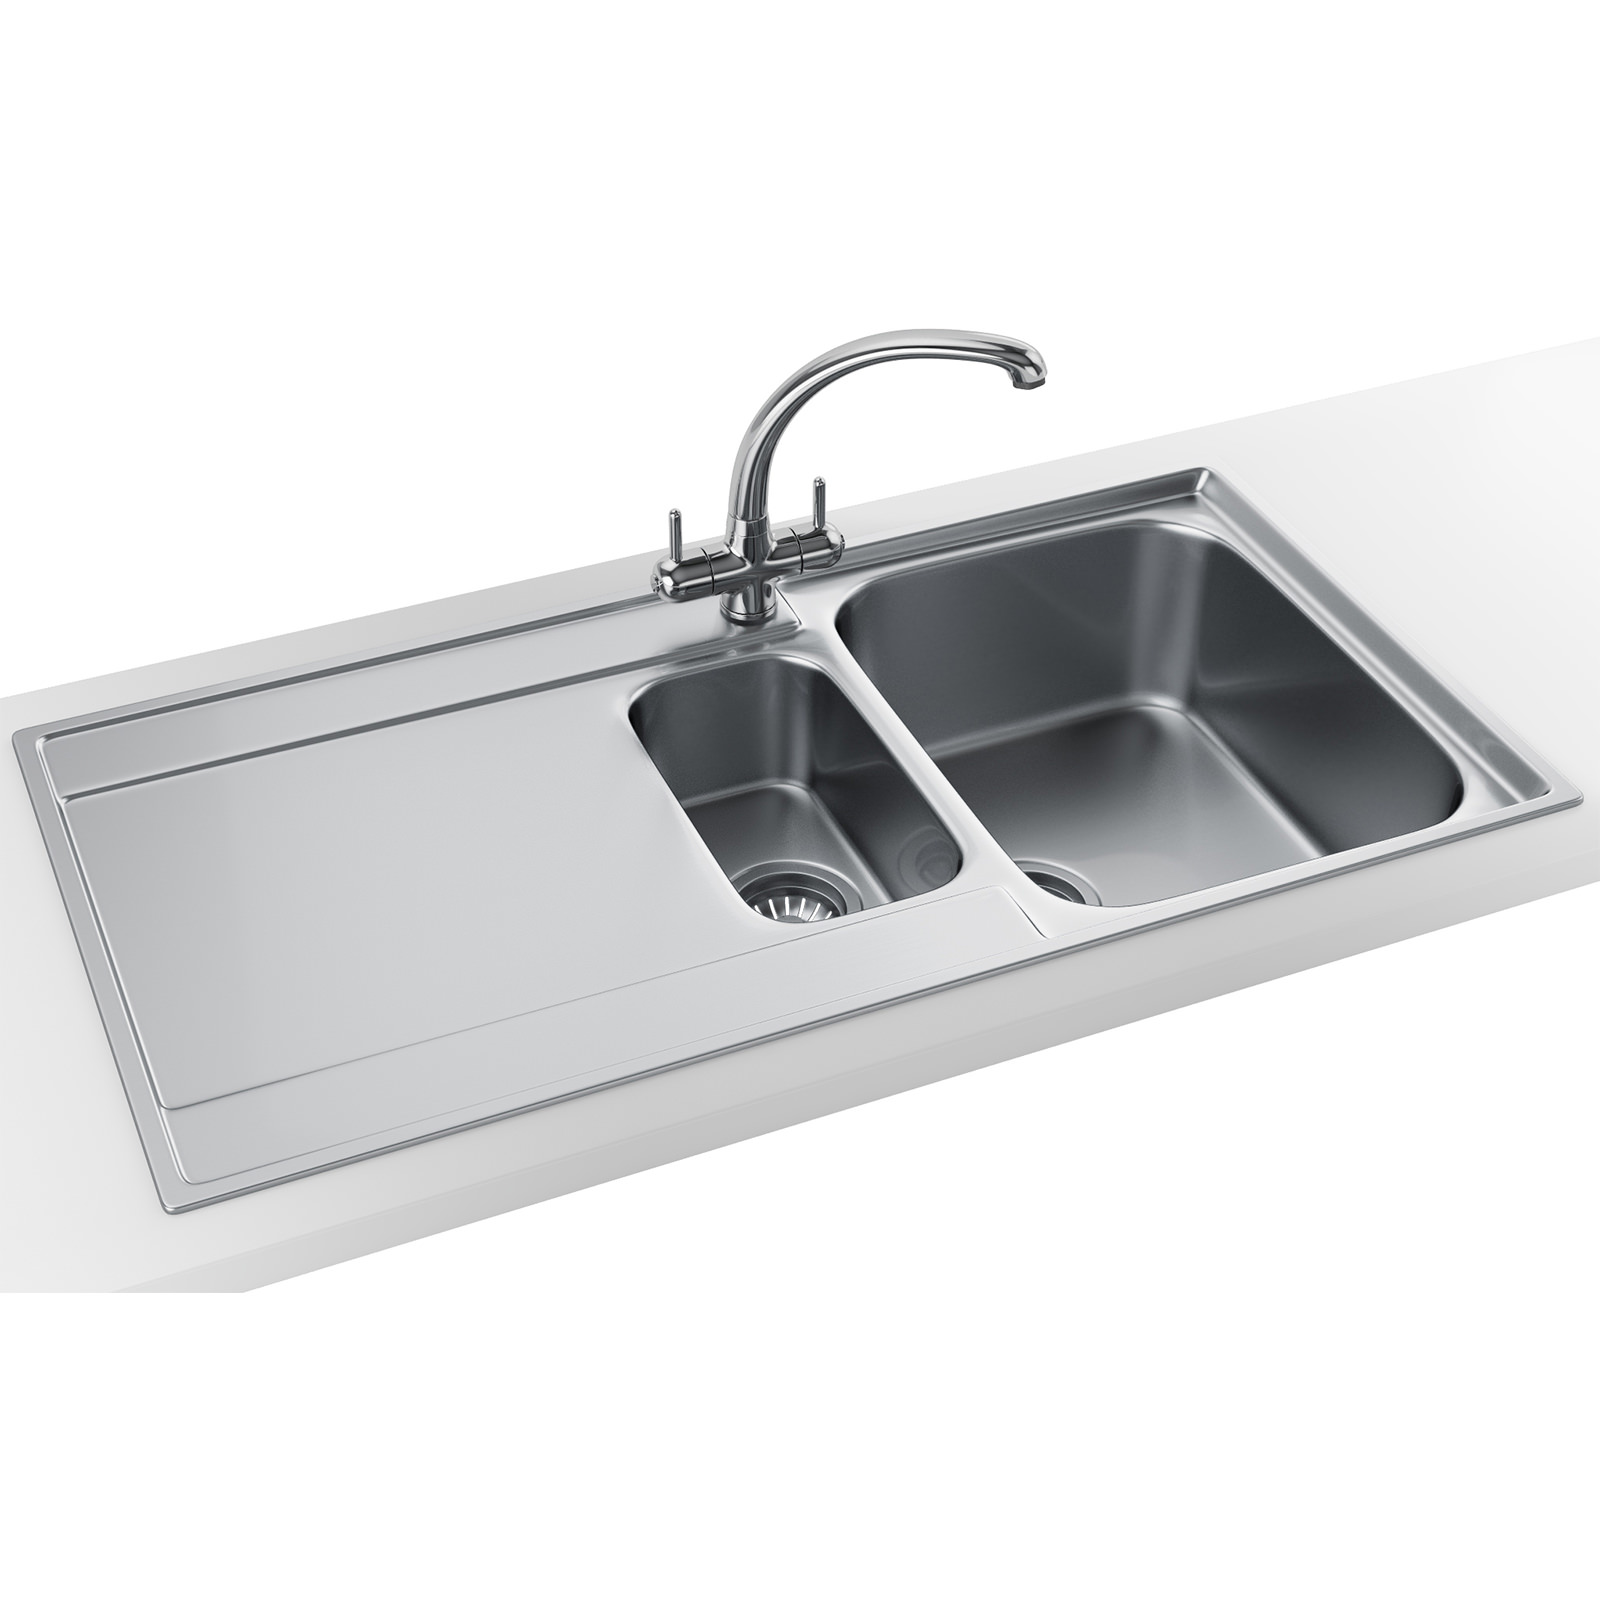 Best Stainless Steel Sinks Uk : ... Maris Slim-Top Propack MRX 251 Stainless Steel Kitchen Sink And Tap